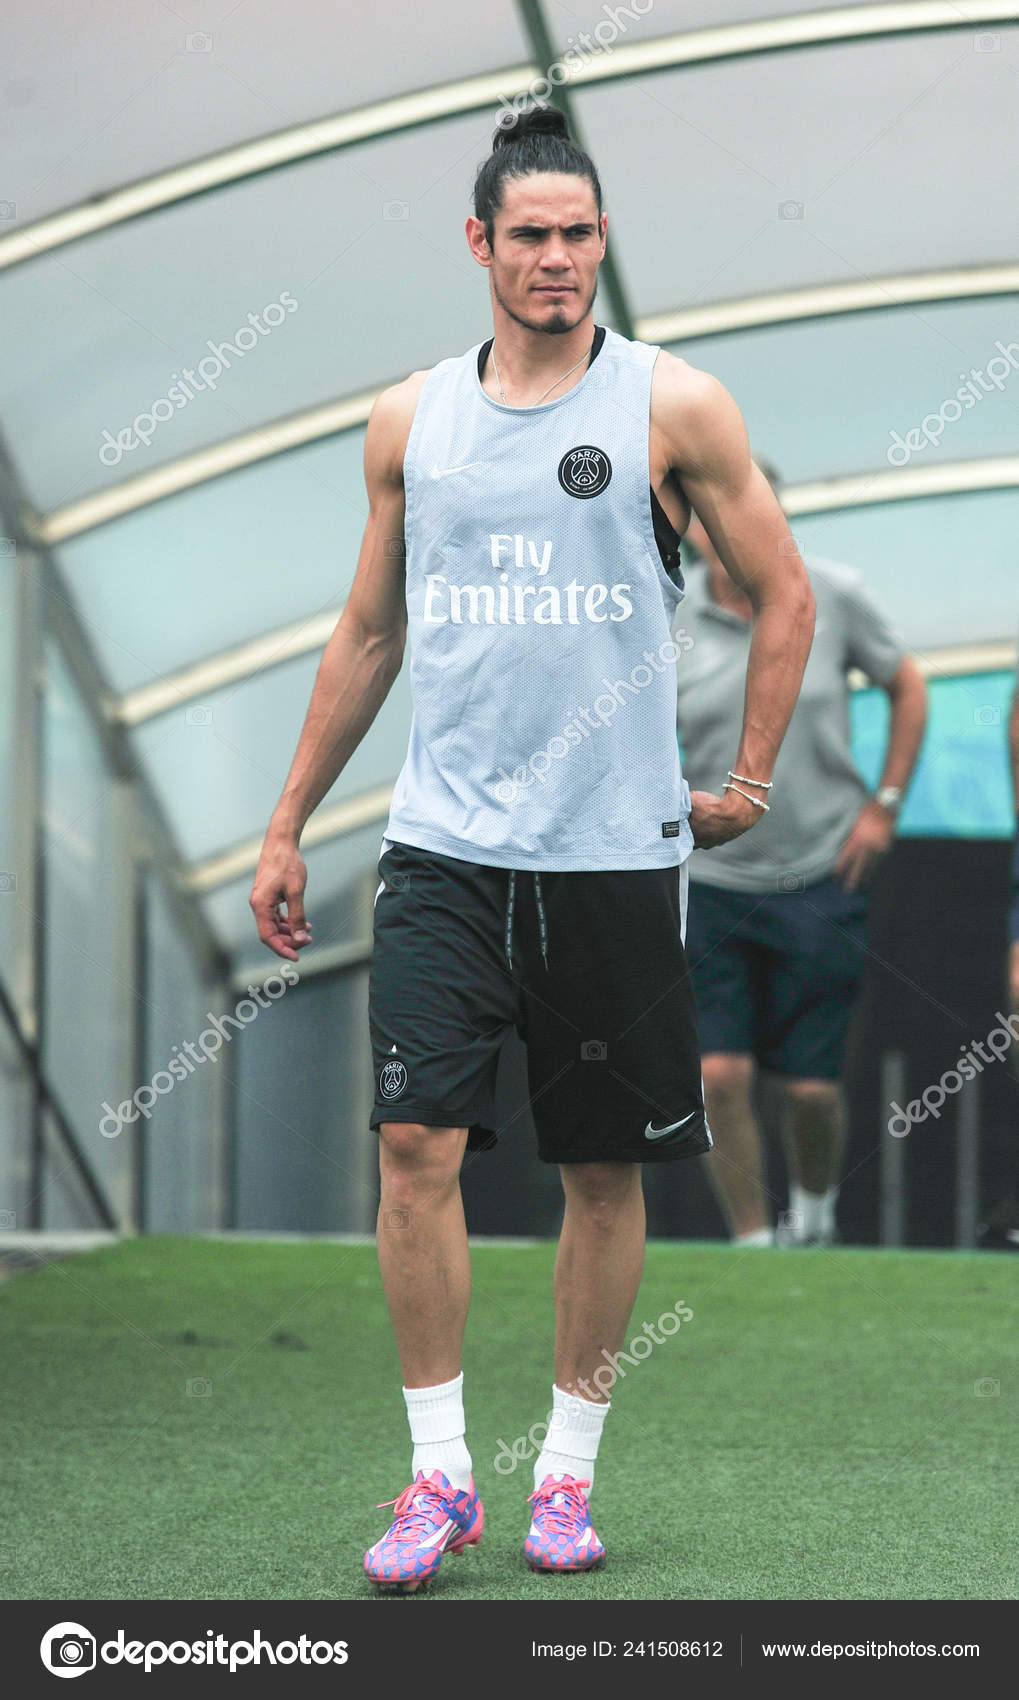 Edinson Cavani Paris Saint Germain Football Club Attends Training Session Stock Editorial Photo C Chinaimages 241508612